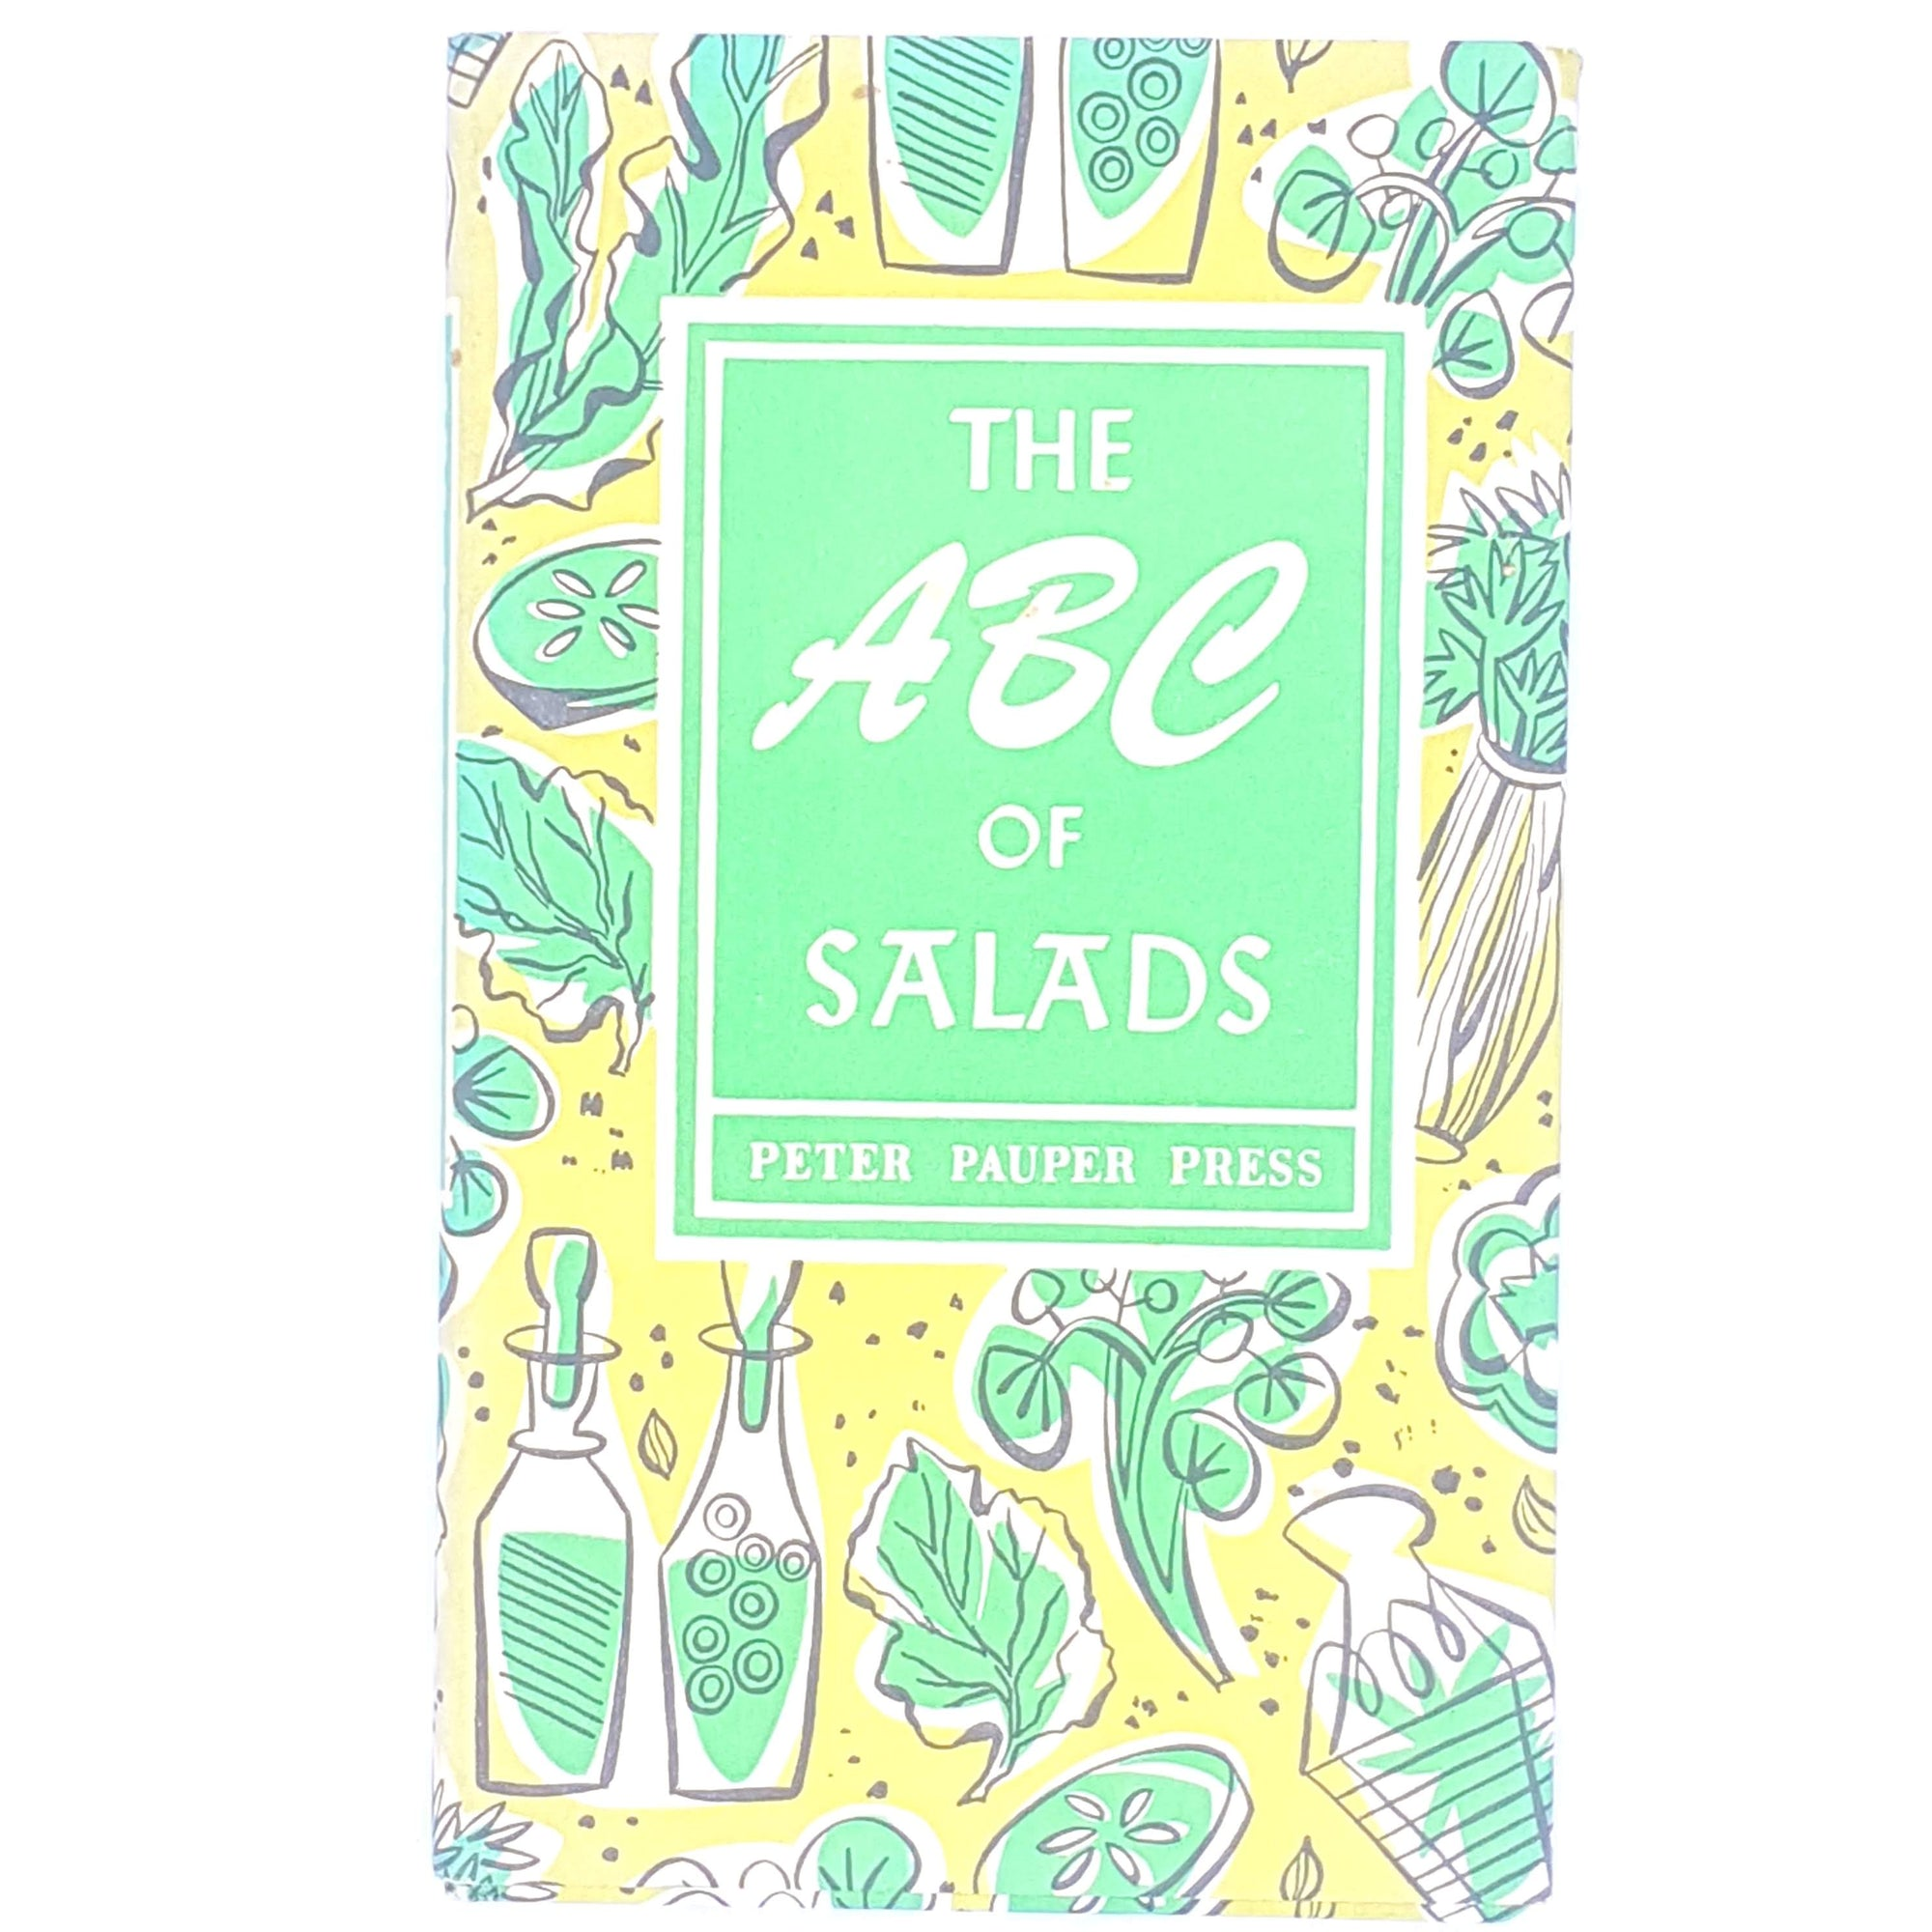 The ABC of Salads by the Peter Pauper Press 1958